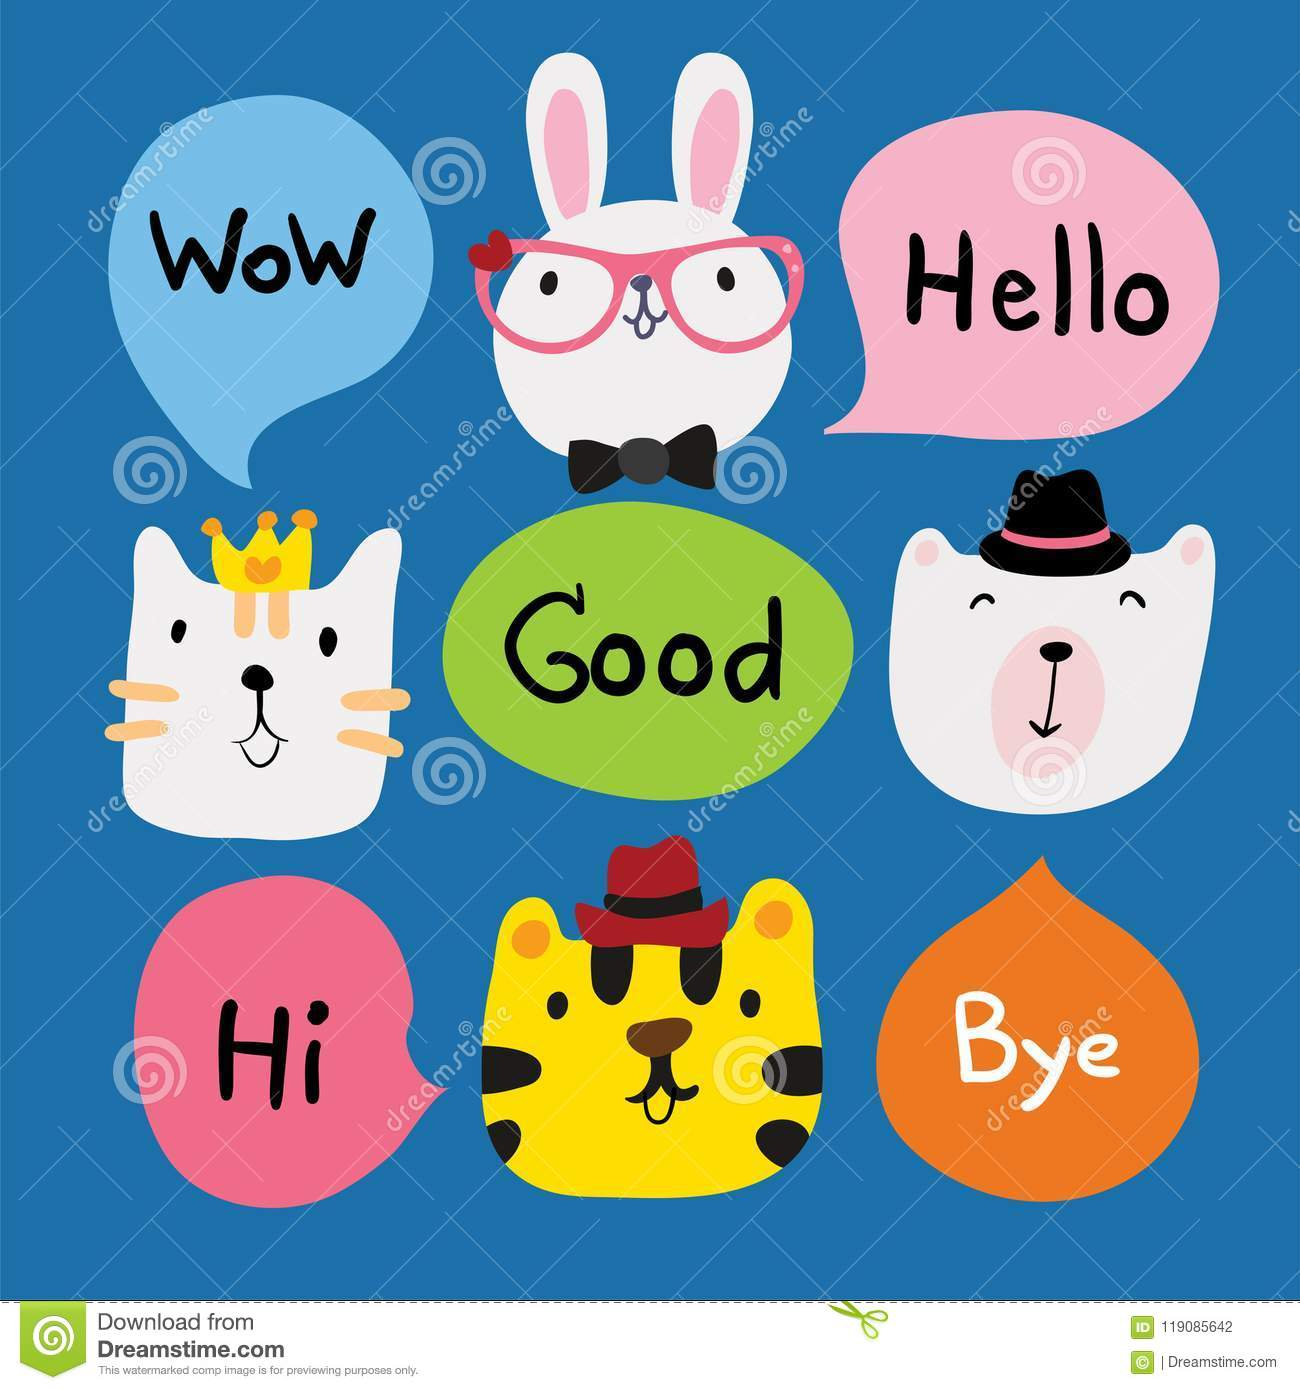 Animals Speech Character Design Stock Vector - Illustration of color